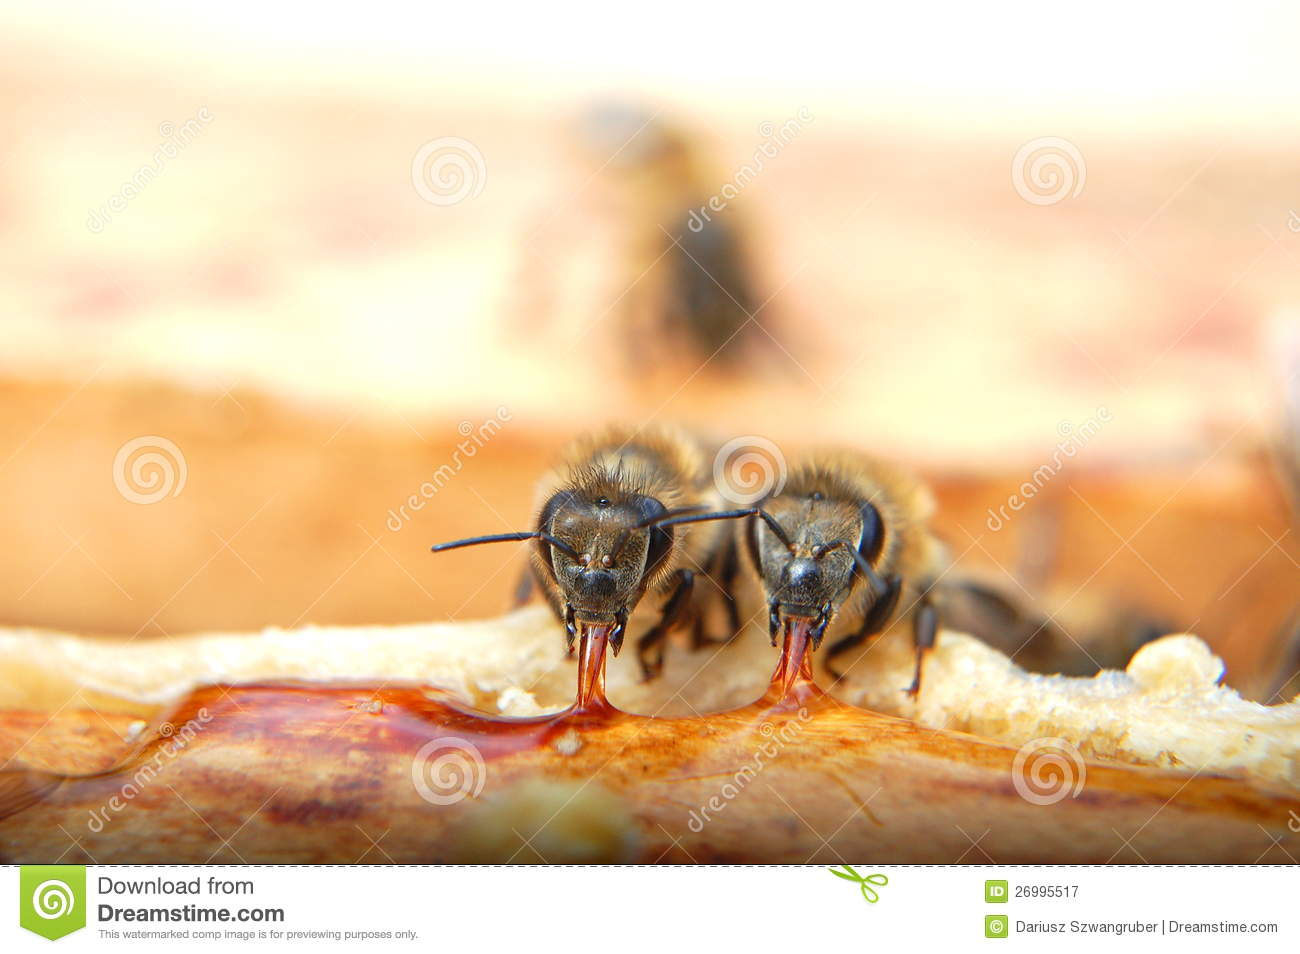 honeycomb drone with Royalty Free Stock Photography Closeup Two Bees Eating Honey Image26995517 on 2014 Ram 1500 Rumble Bee Concept in addition Royalty Free Stock Photography Queen Bee Bee Hive Laying Eggs Beehive Supported Worker Bees Image30903937 moreover Grade Tw likewise Honey moreover respond.